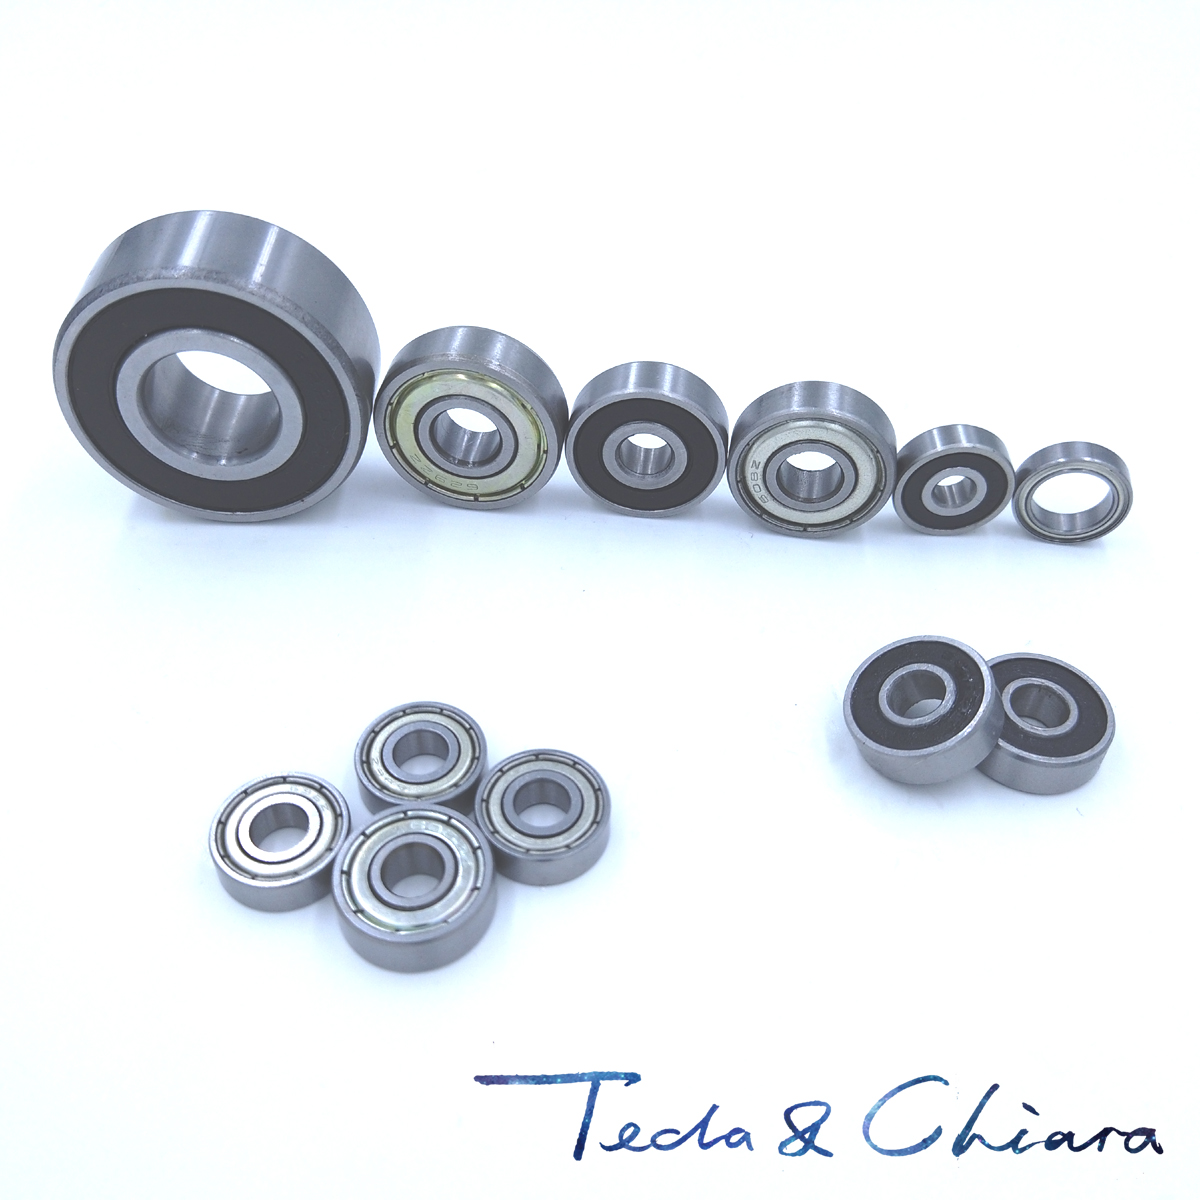 694 694ZZ 694RS 694-2Z 694Z 694-2RS ZZ RS RZ 2RZ Deep Groove Ball Bearings 4 X 11 X 4mm